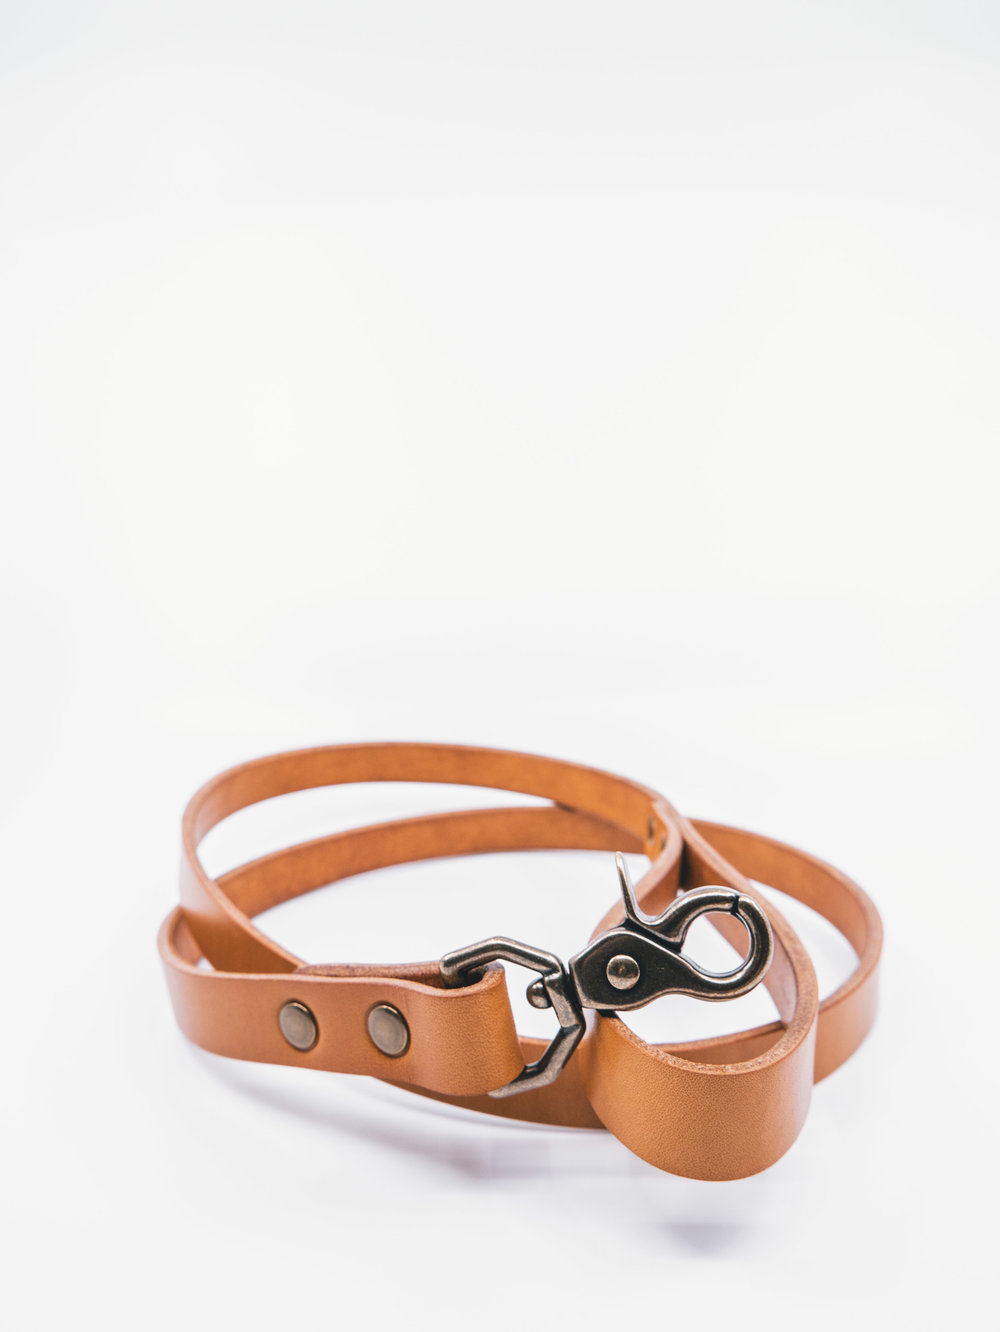 Brown Leather Dog Leash - English Tan and Antique Brass-22.jpg